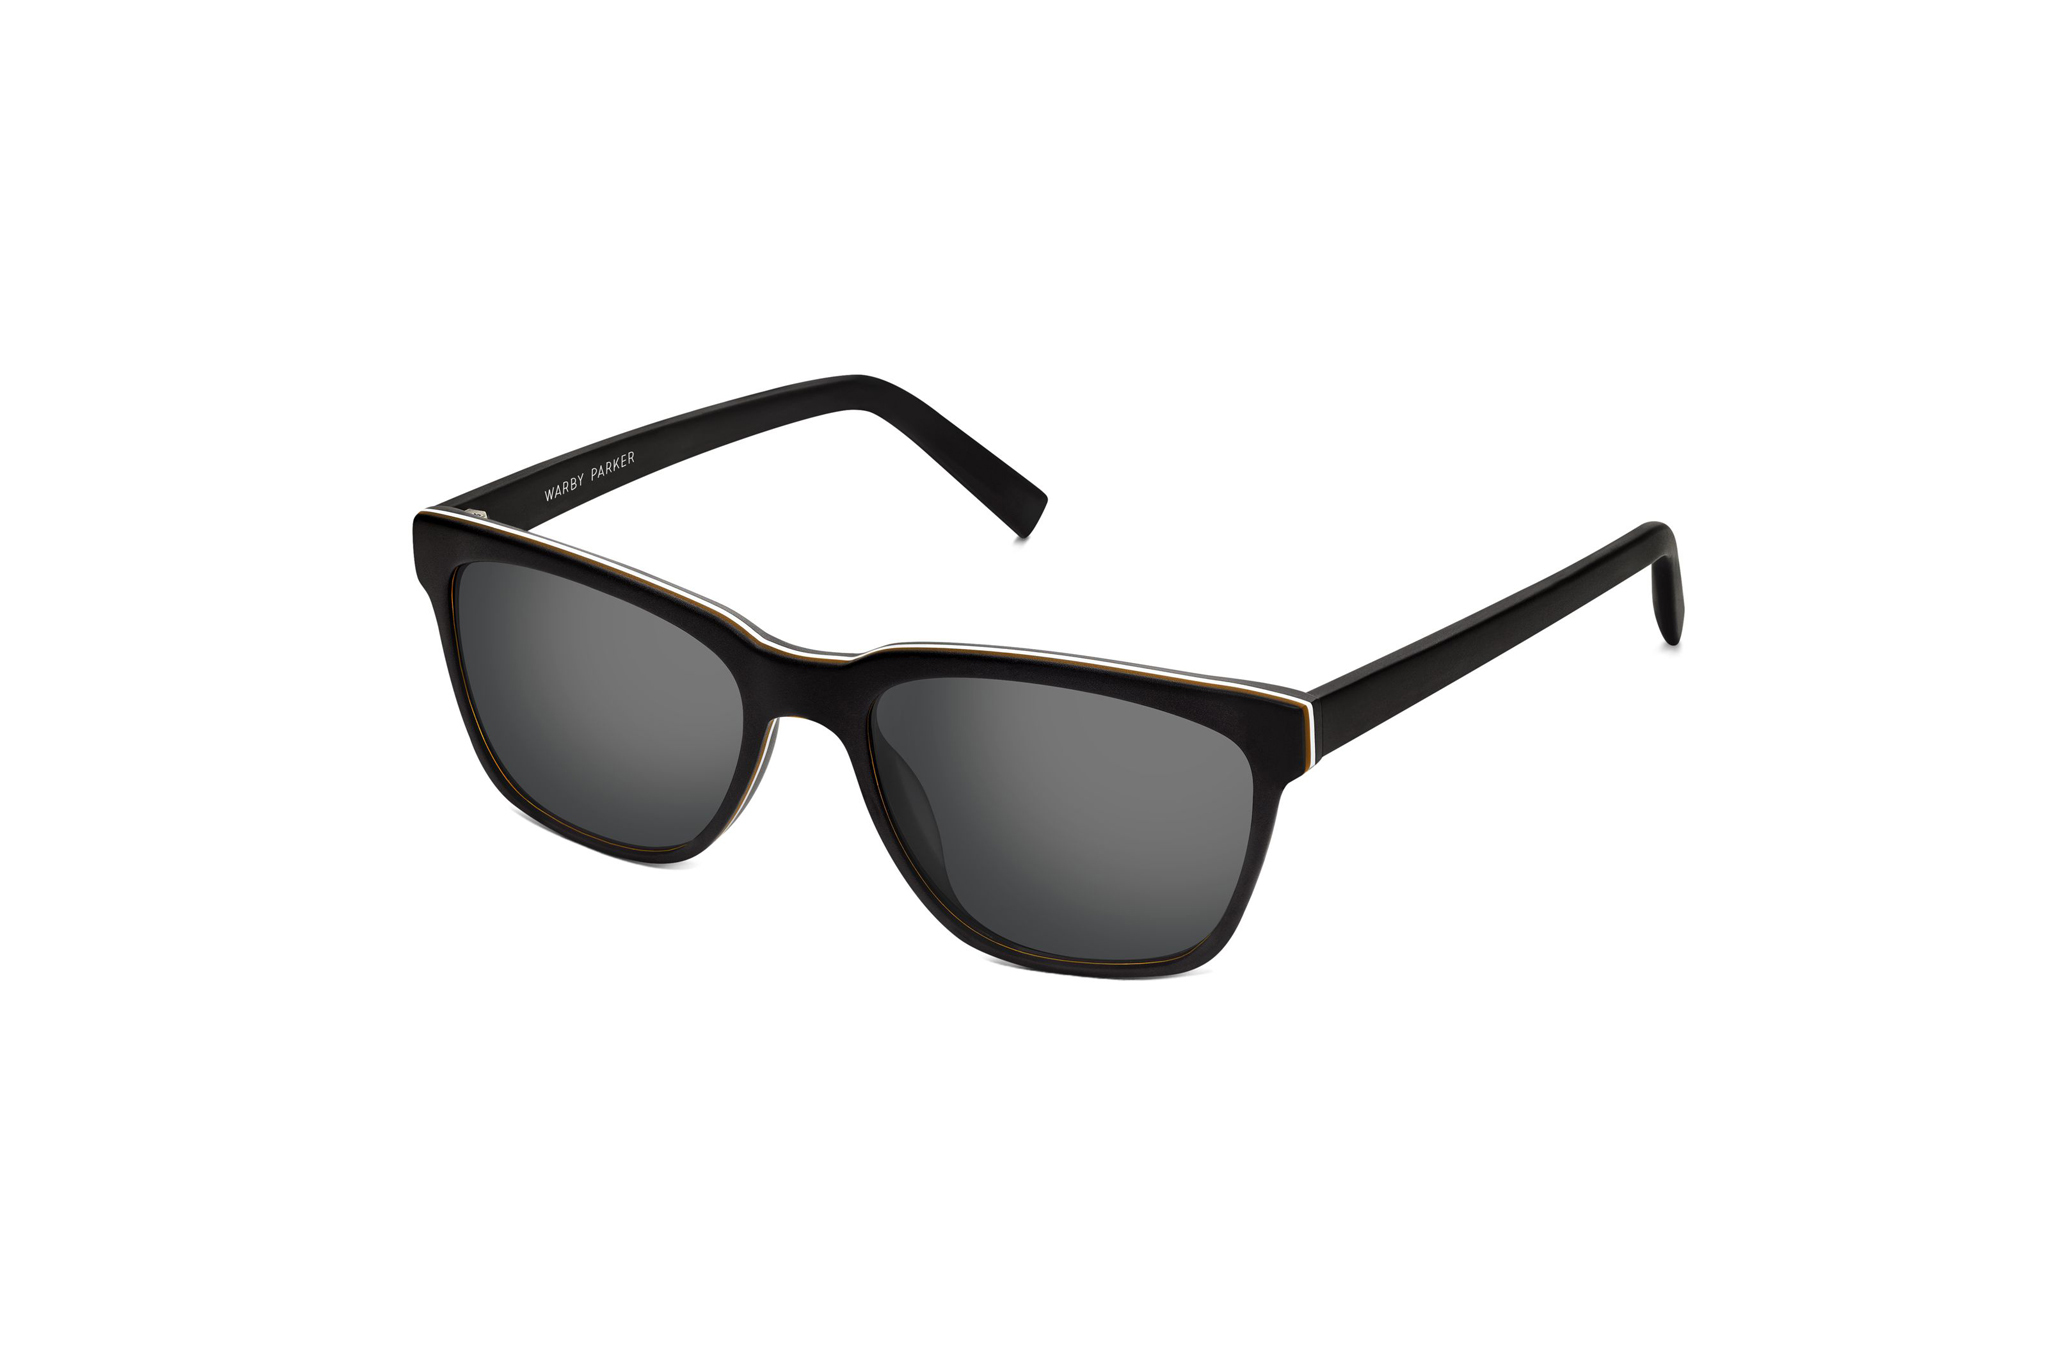 Warby Parker Barkley Sunglasses